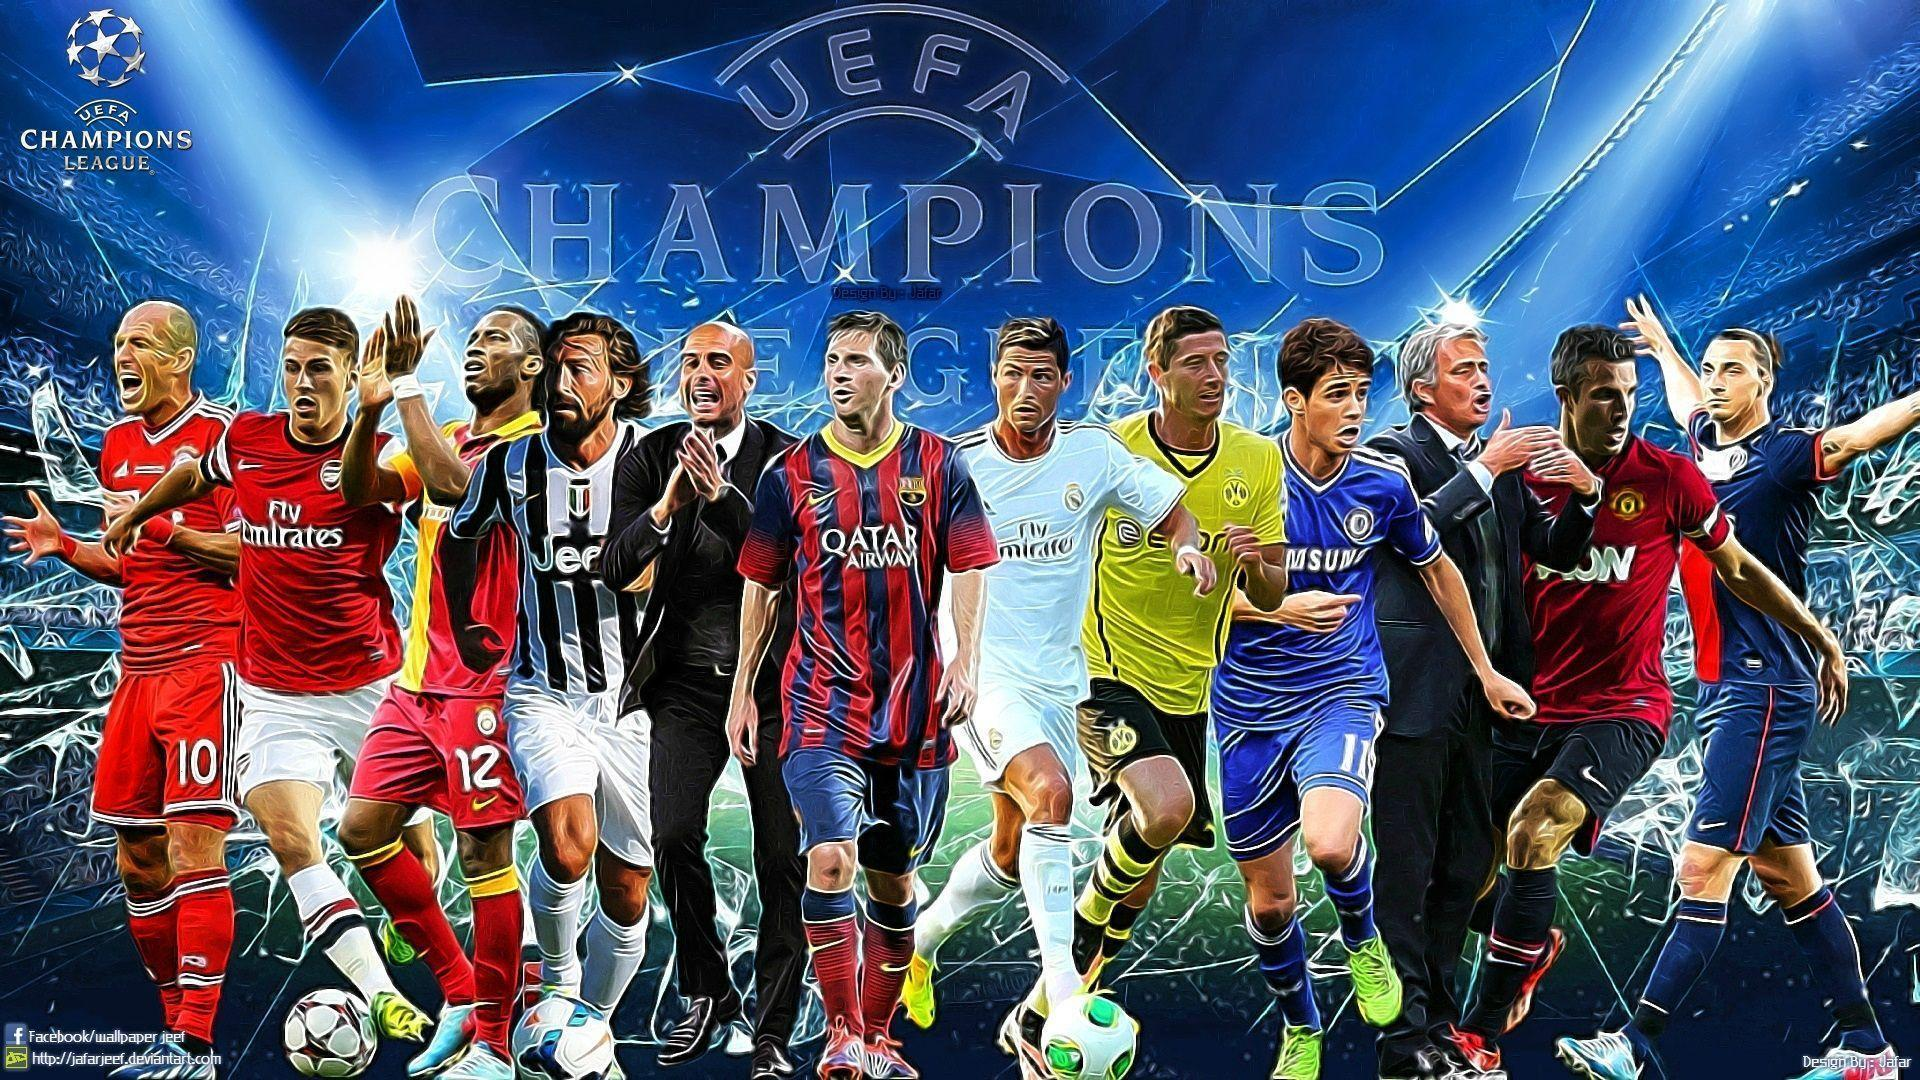 wallpapers soccer players